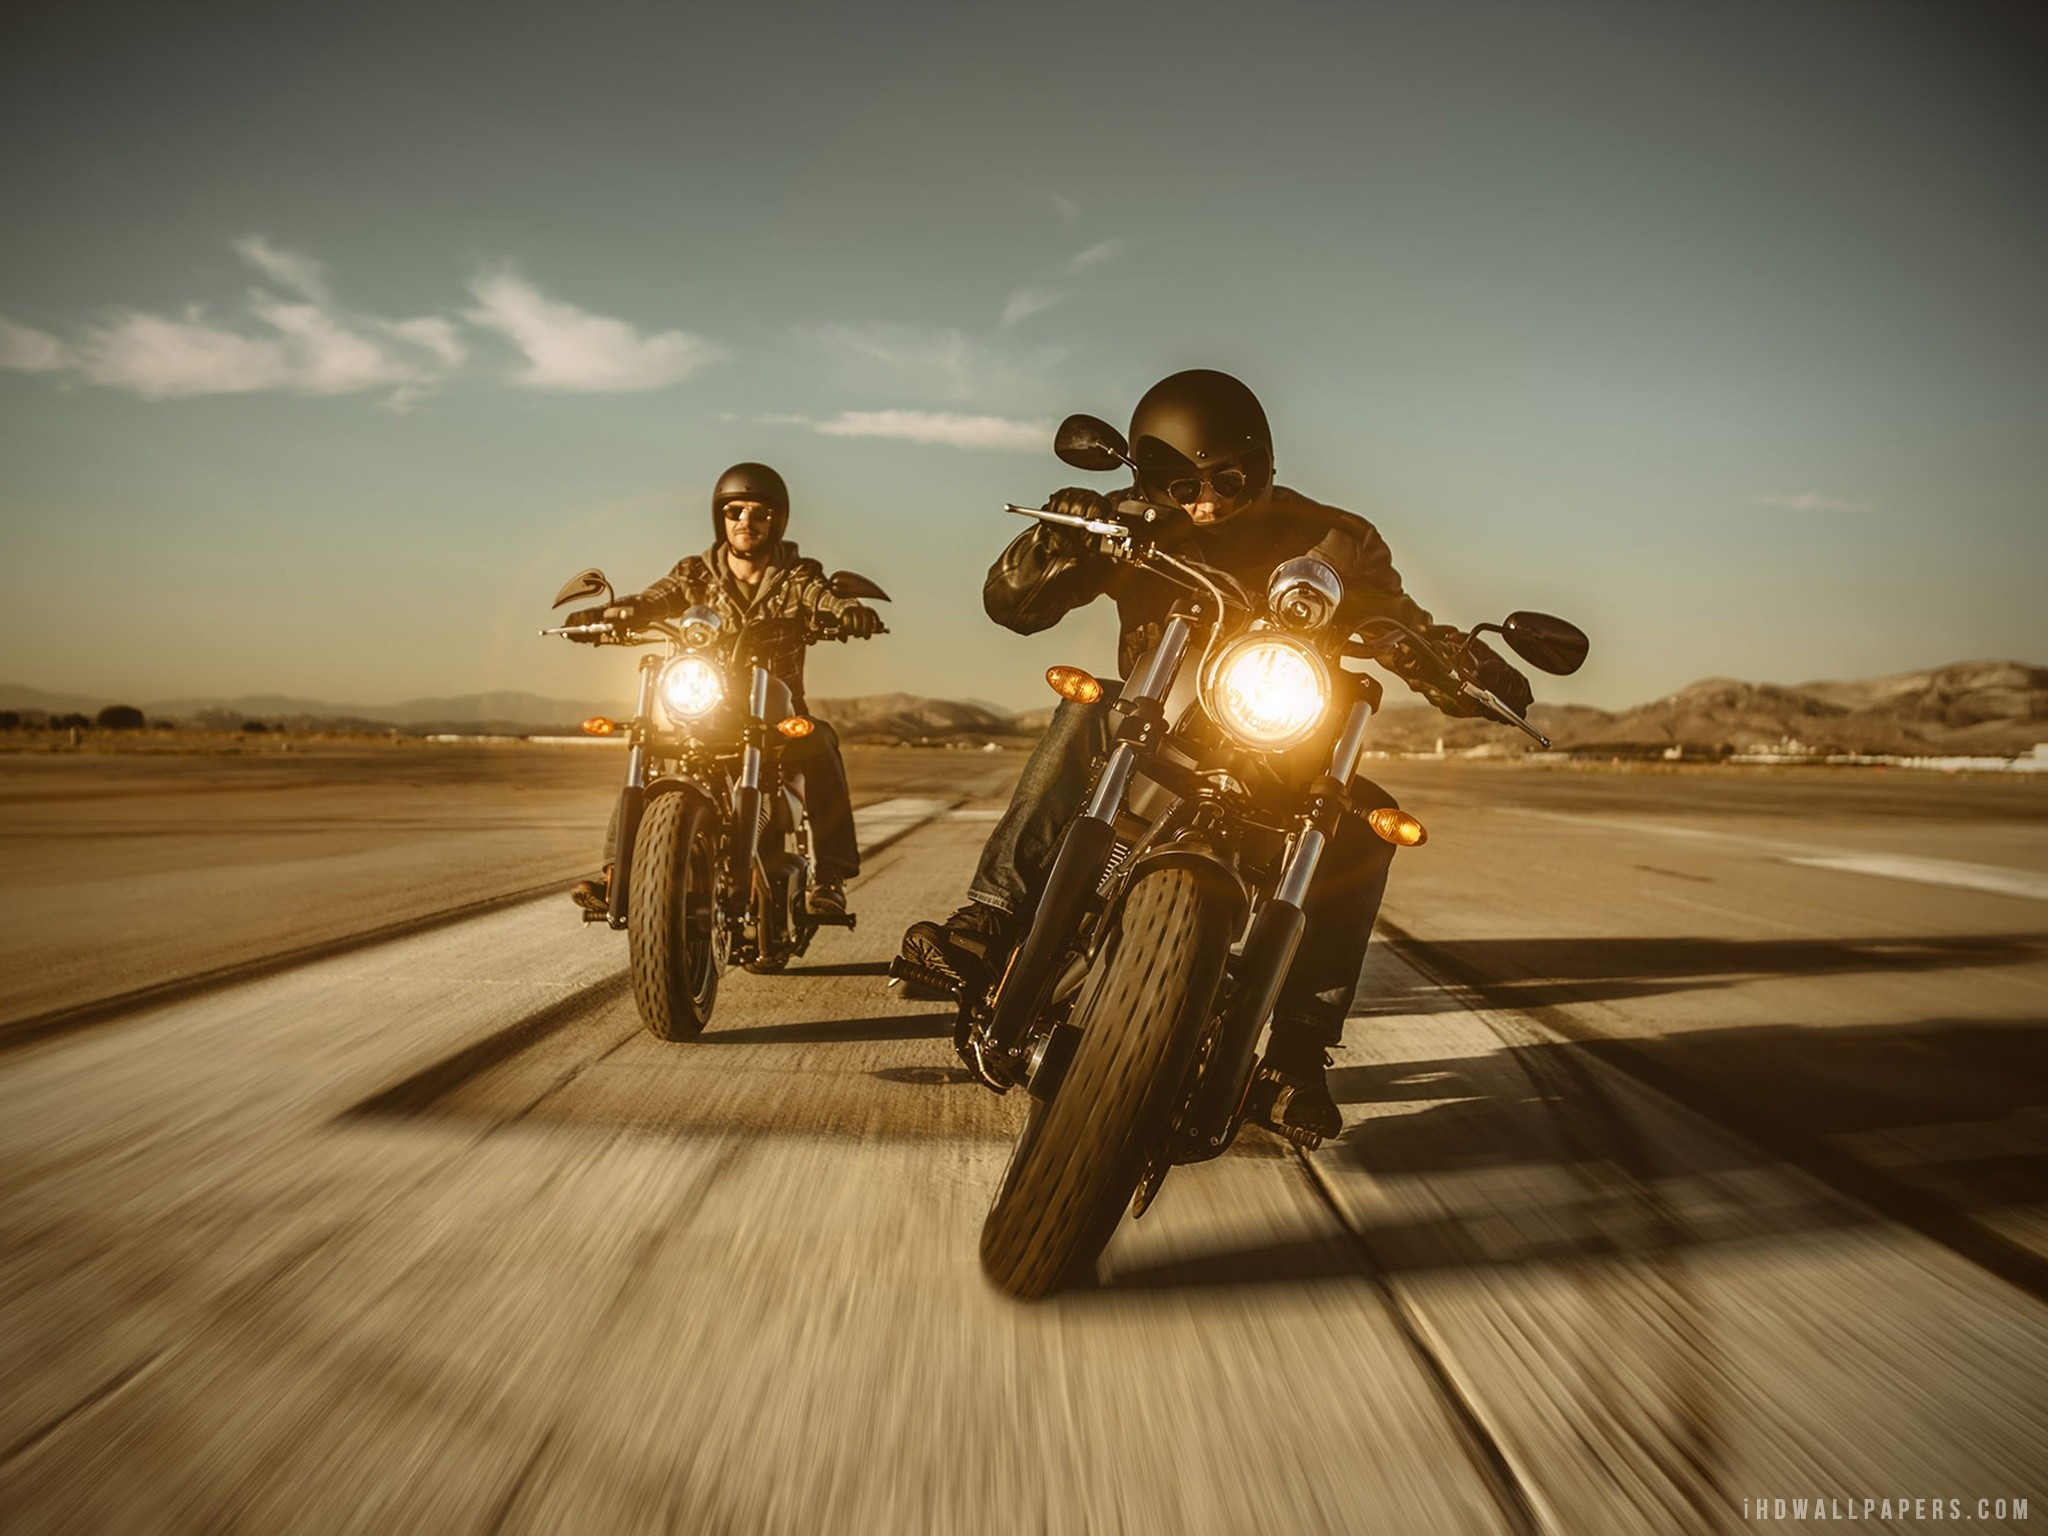 2048x1536 victory-motorcycle-awesome-hd-wallpaper | Victory Motorcycle Wallpapers |  Pinterest | Victory motorcycles and Motorcycle wallpaper